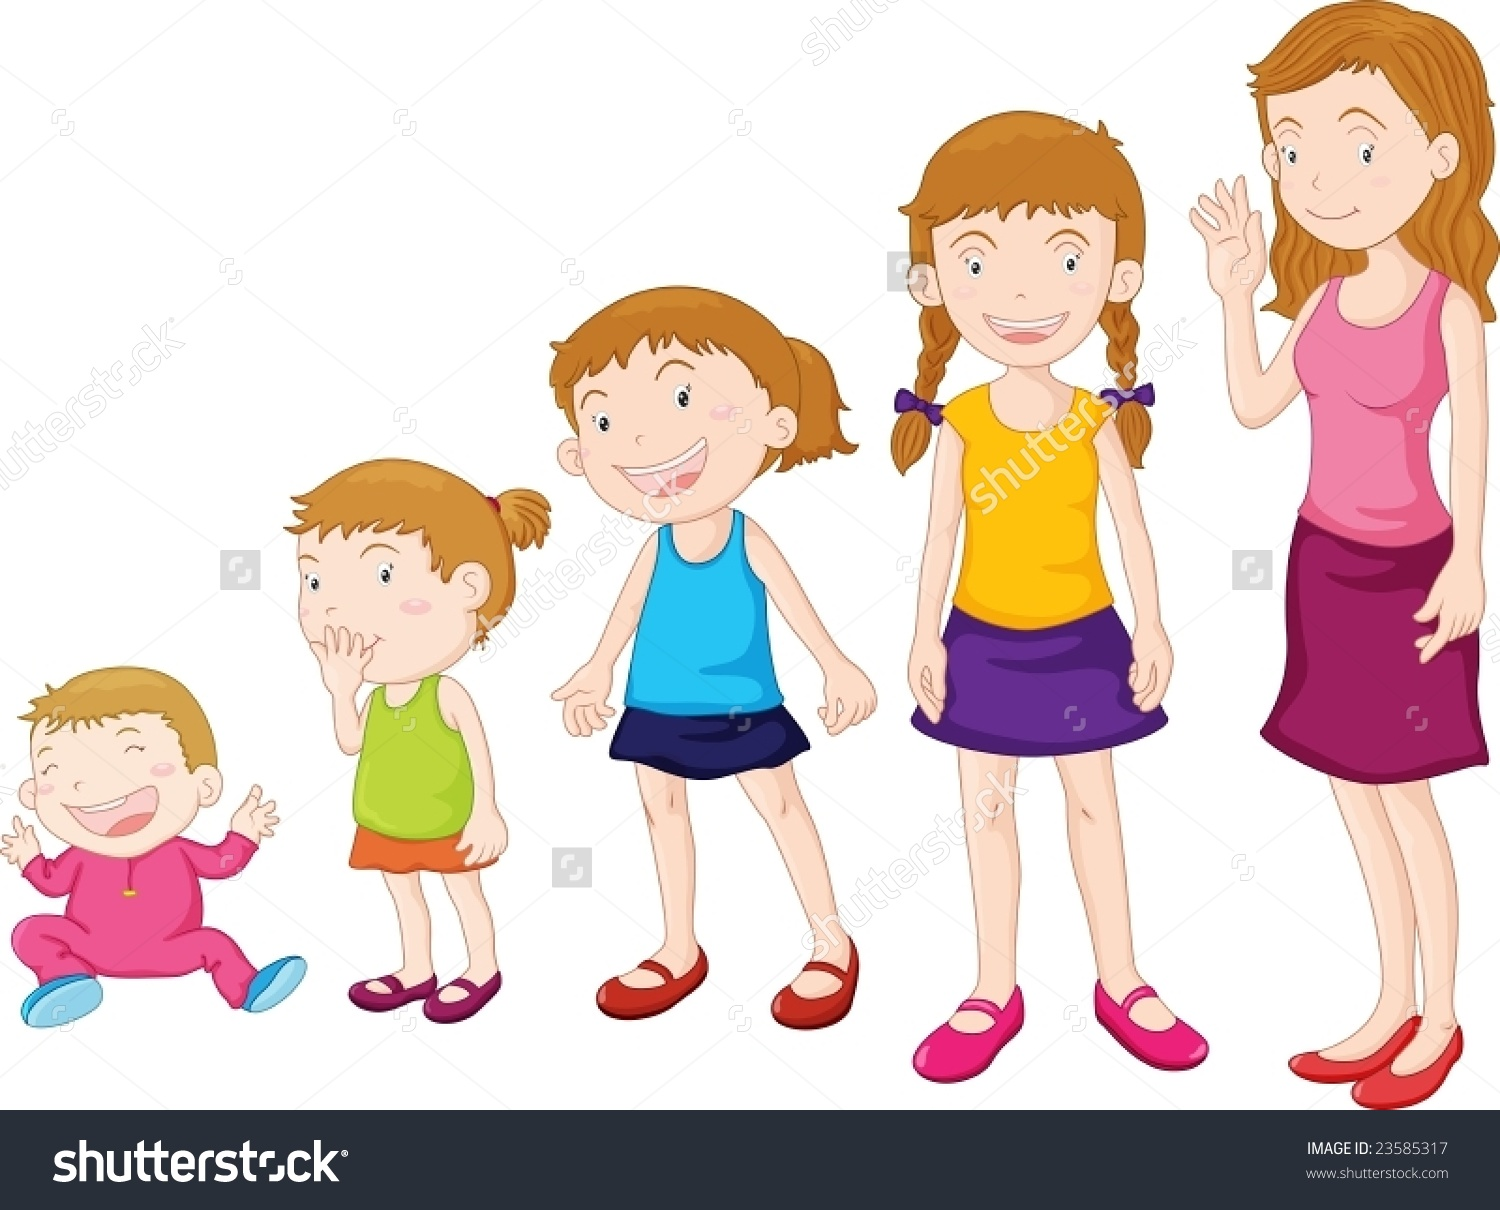 Child growing clipart.